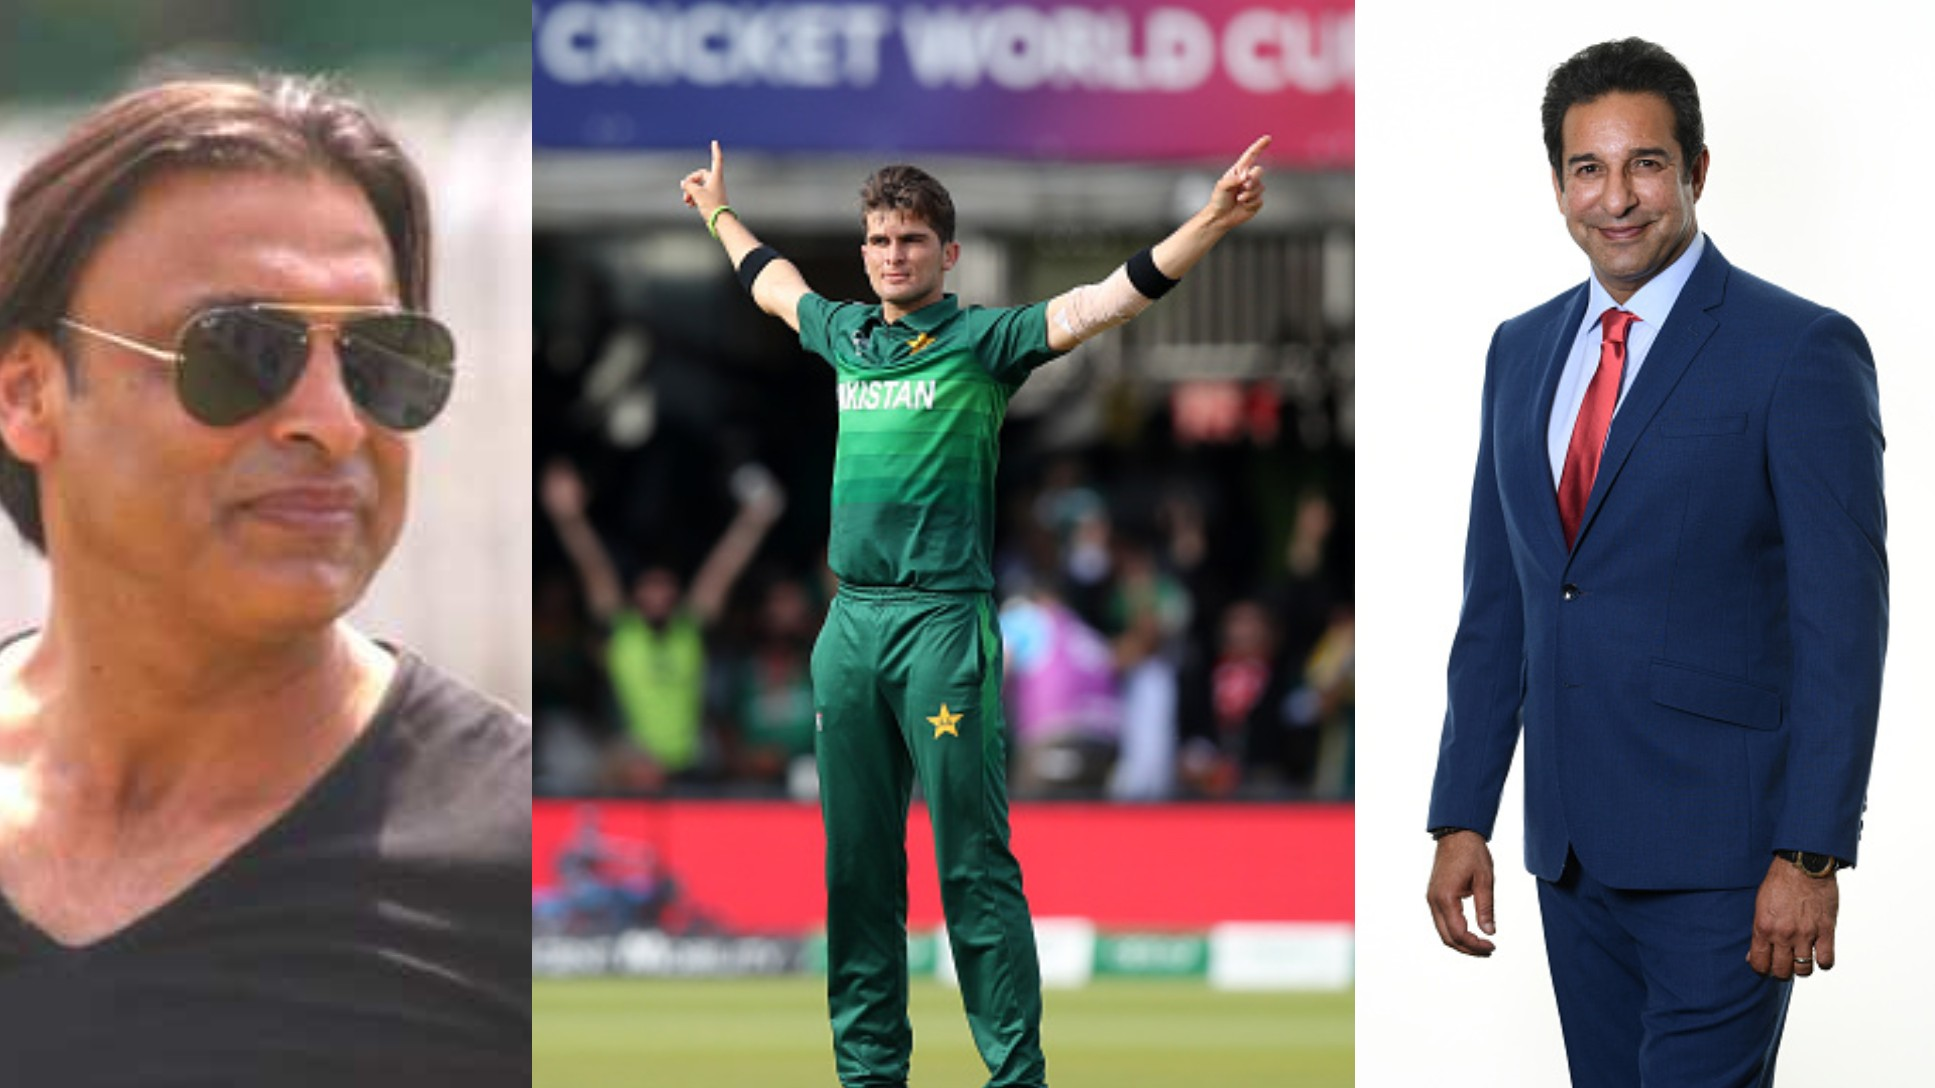 CWC 2019: Cricket fraternity praises Shaheen Afridi's 6/35 as Pakistan defeats Bangladesh by 94 runs